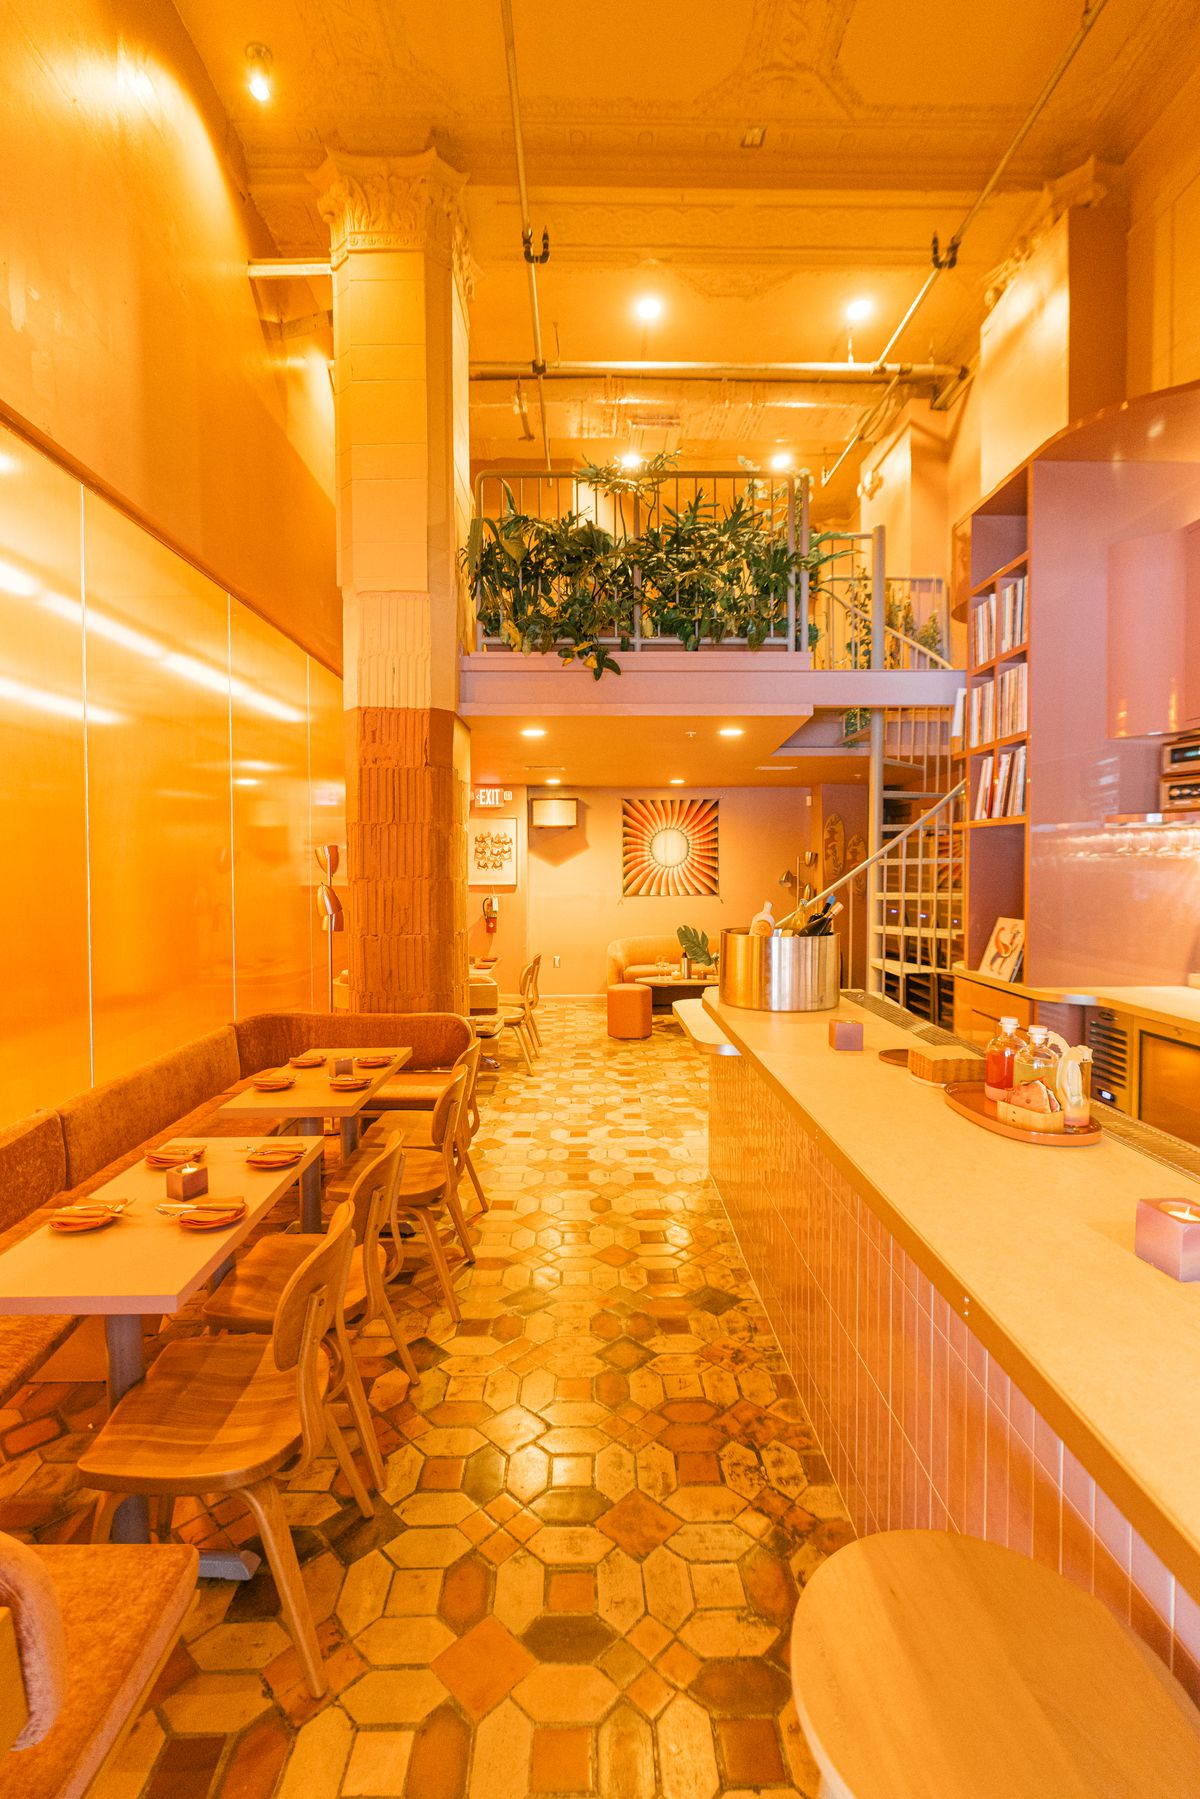 pastel interior space, wooden chairs, large bar, with views of the second floor